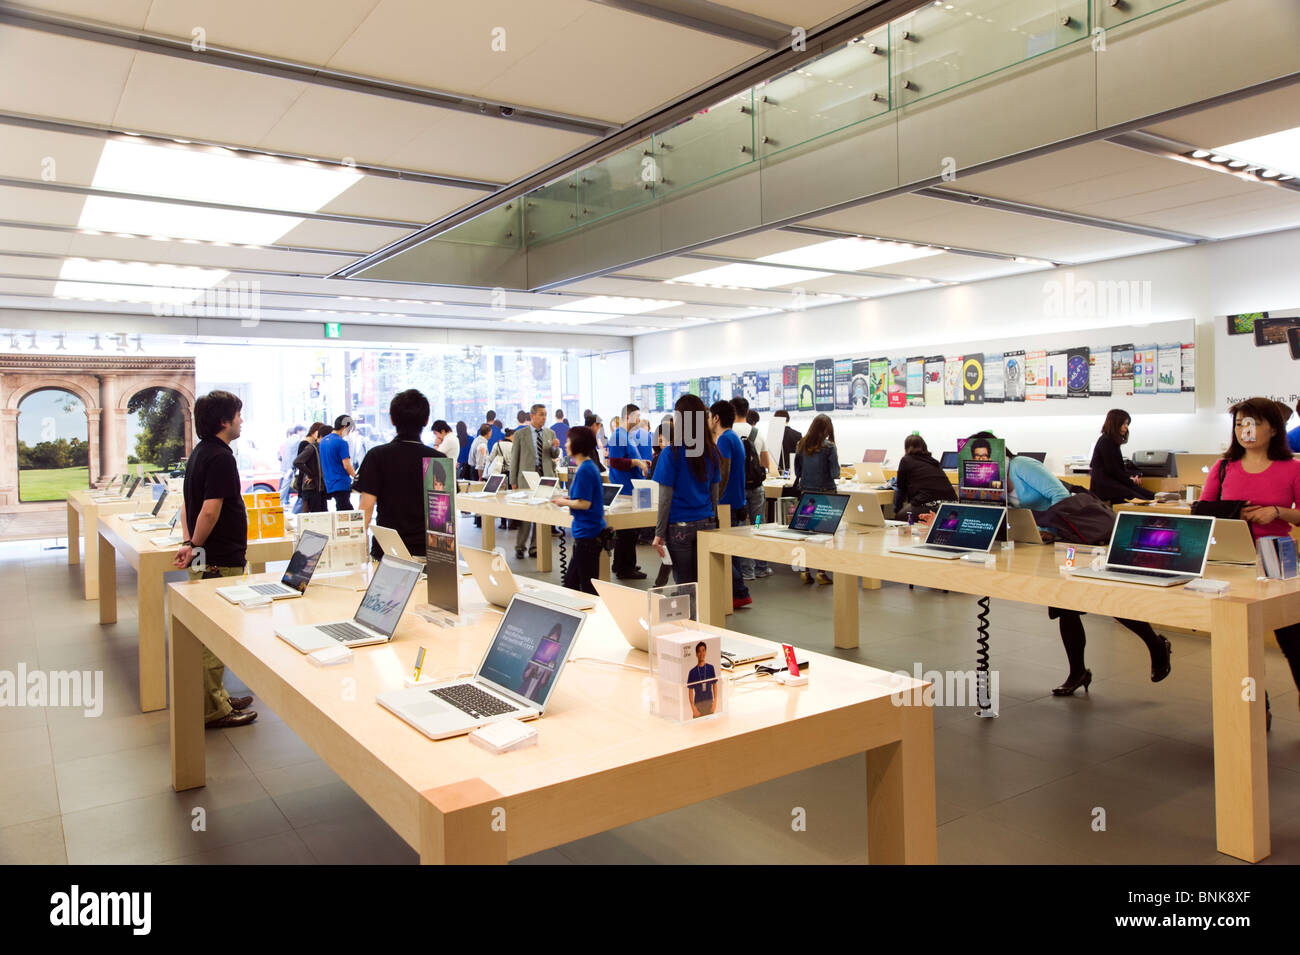 Apple store on Chuo-dori in Ginza 4-chome, Tokyo, Japan - Stock Image